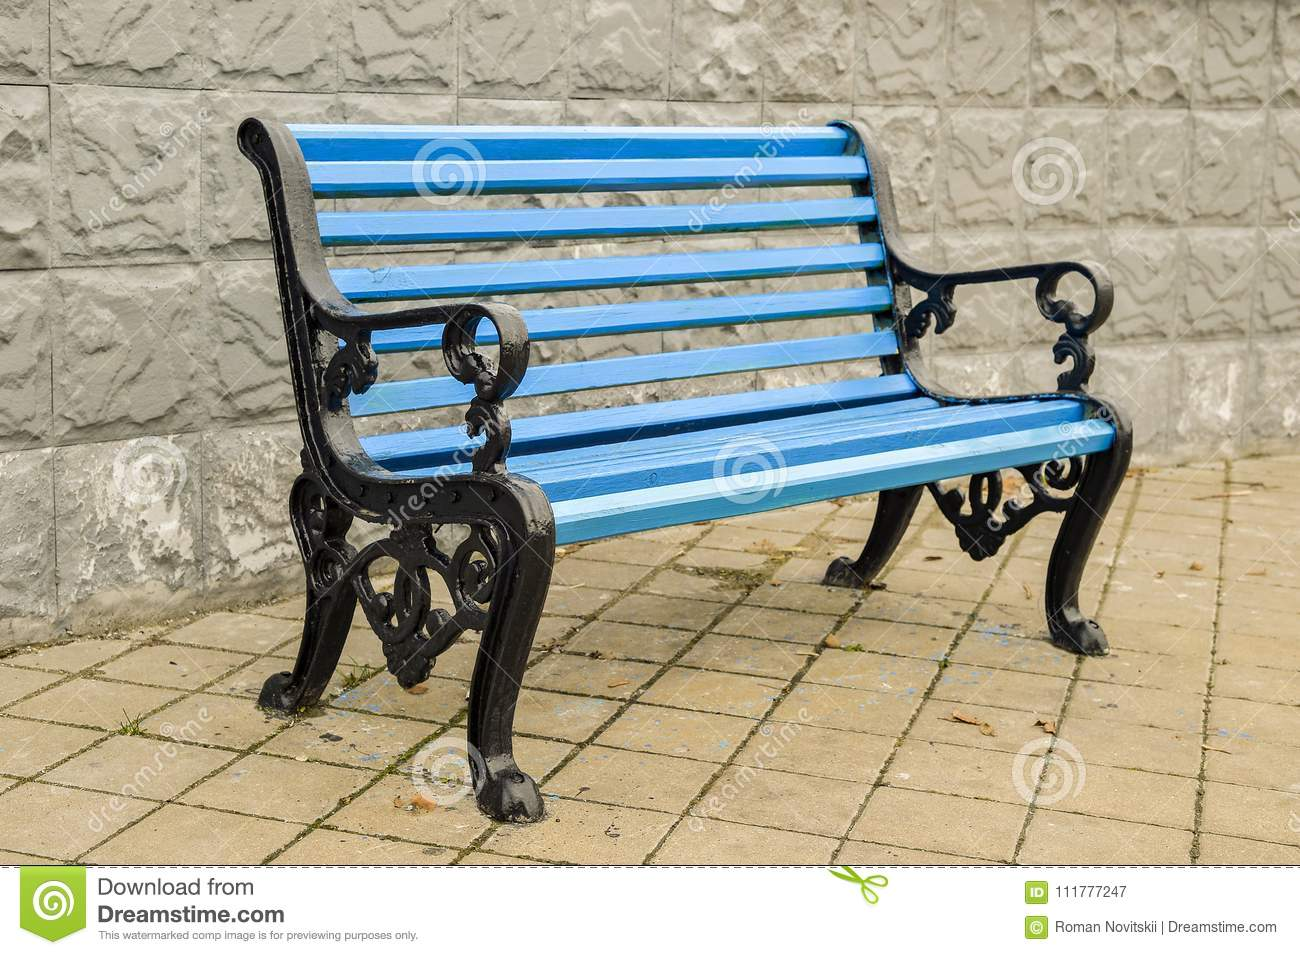 The blue bench in the Park on the tiled pavement. No body.